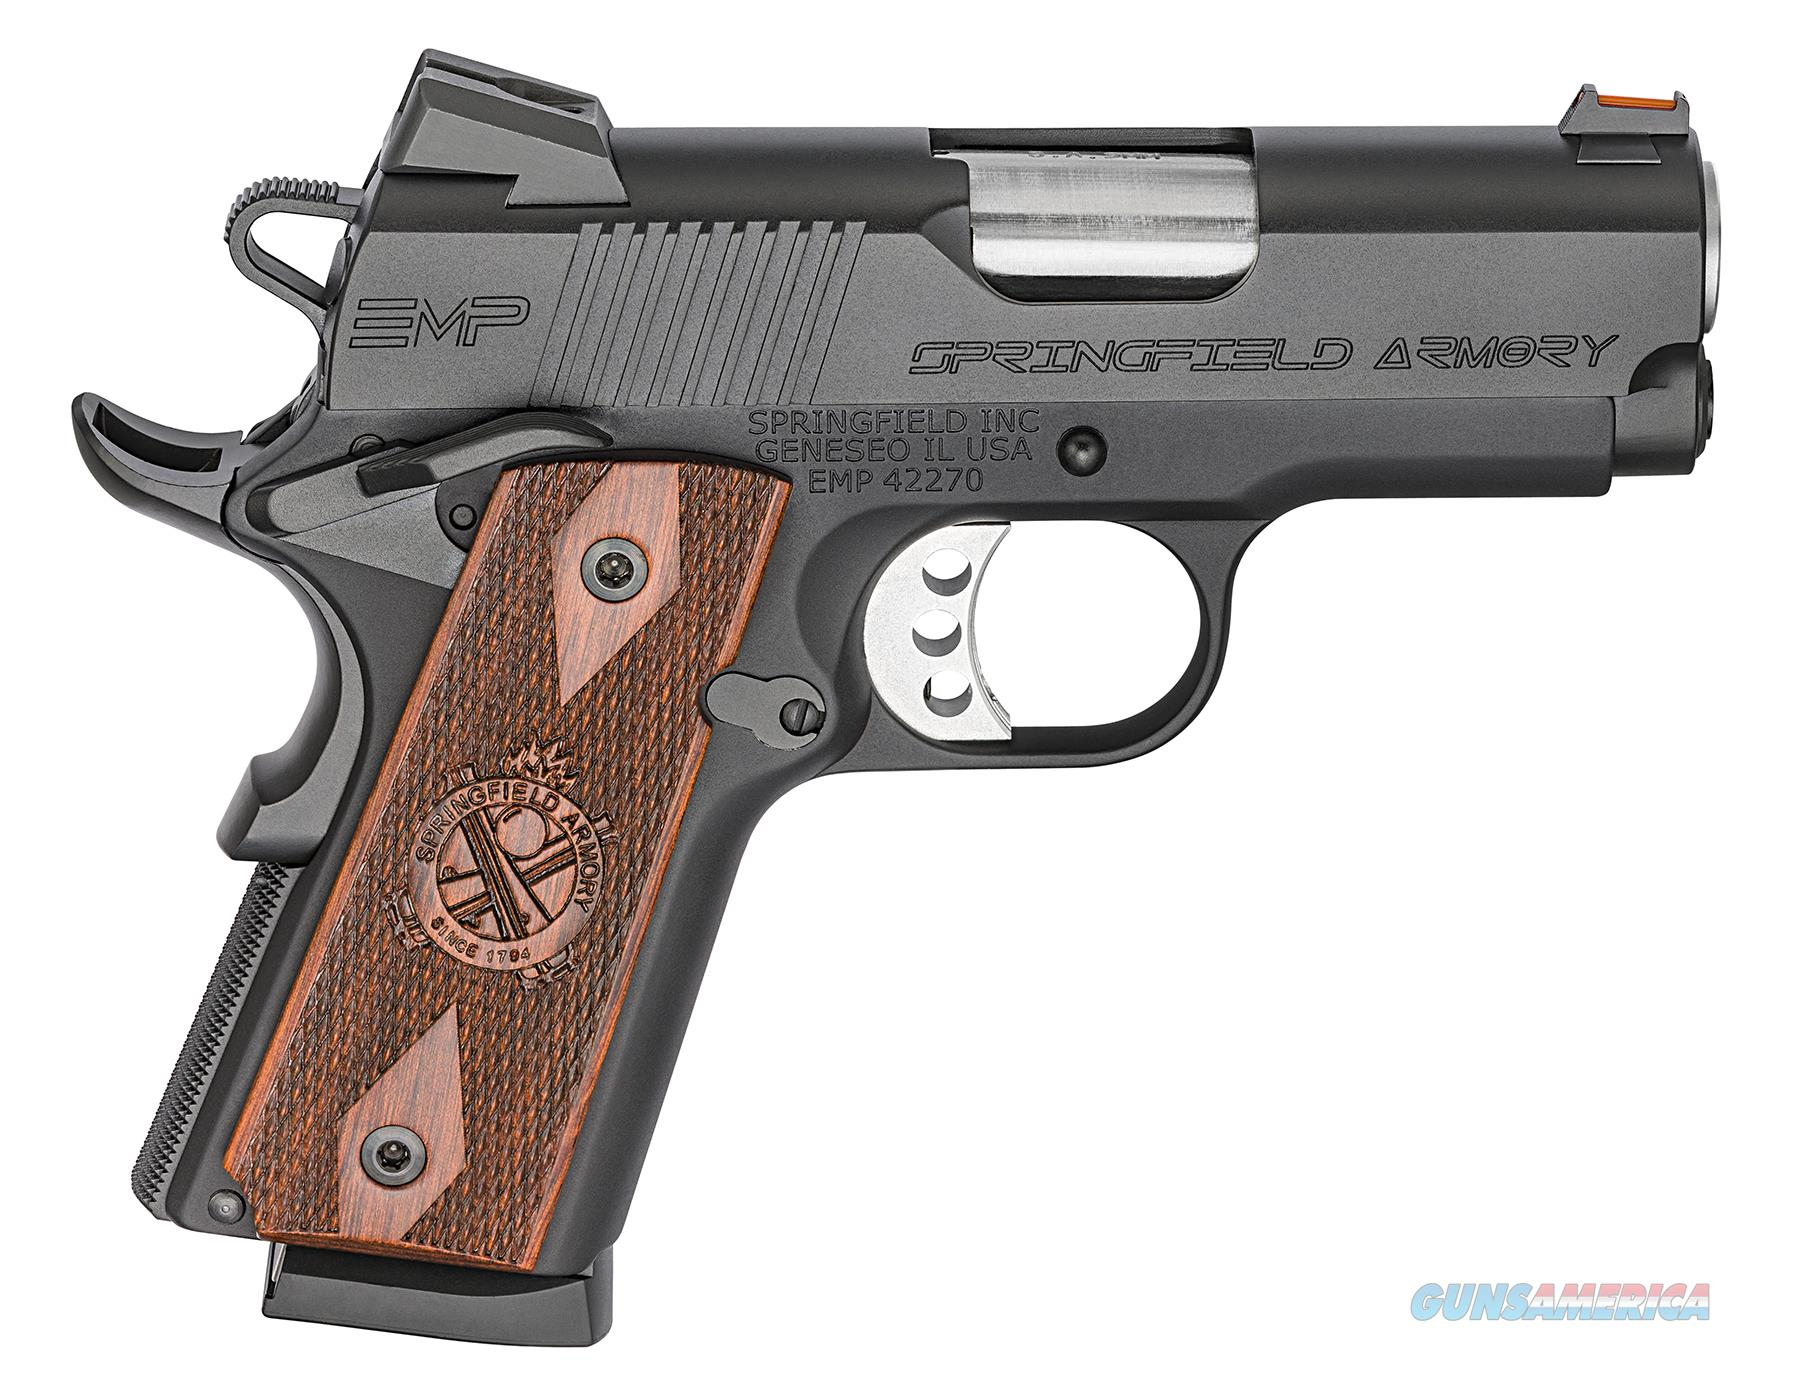 Springfield EMP 9mm Black Compact 1911 w/ 3 Mags PI9208L *NEW*   Guns > Pistols > Springfield Armory Pistols > 1911 Type